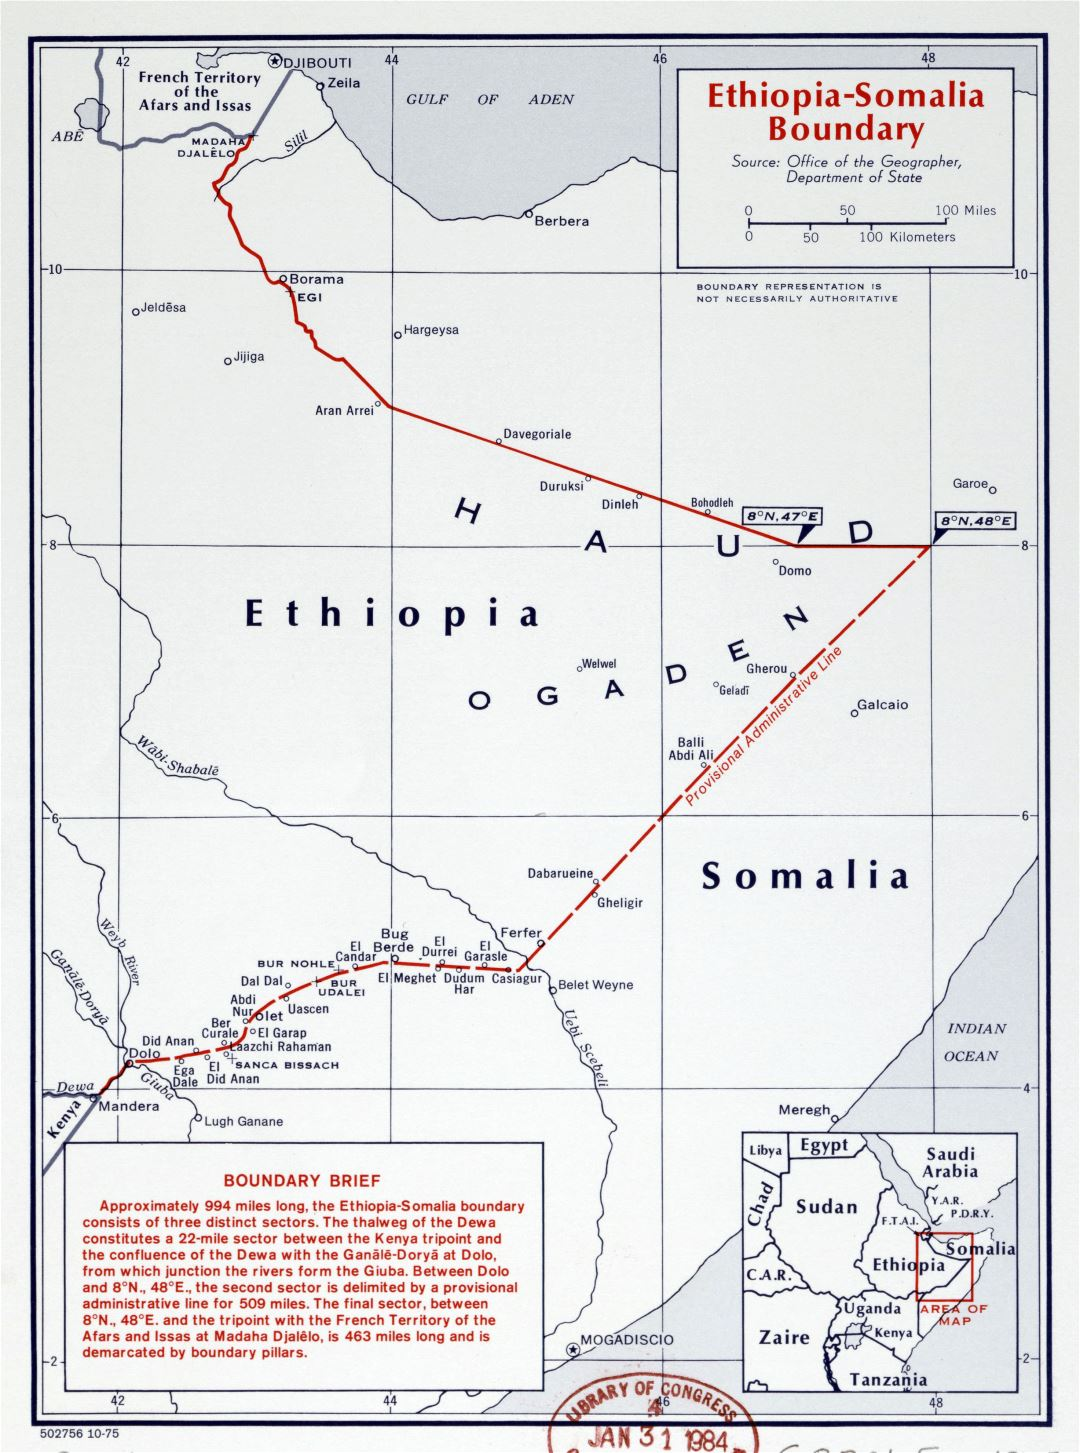 Large detailed map of Ethiopia-Somalia Boundary - 1975